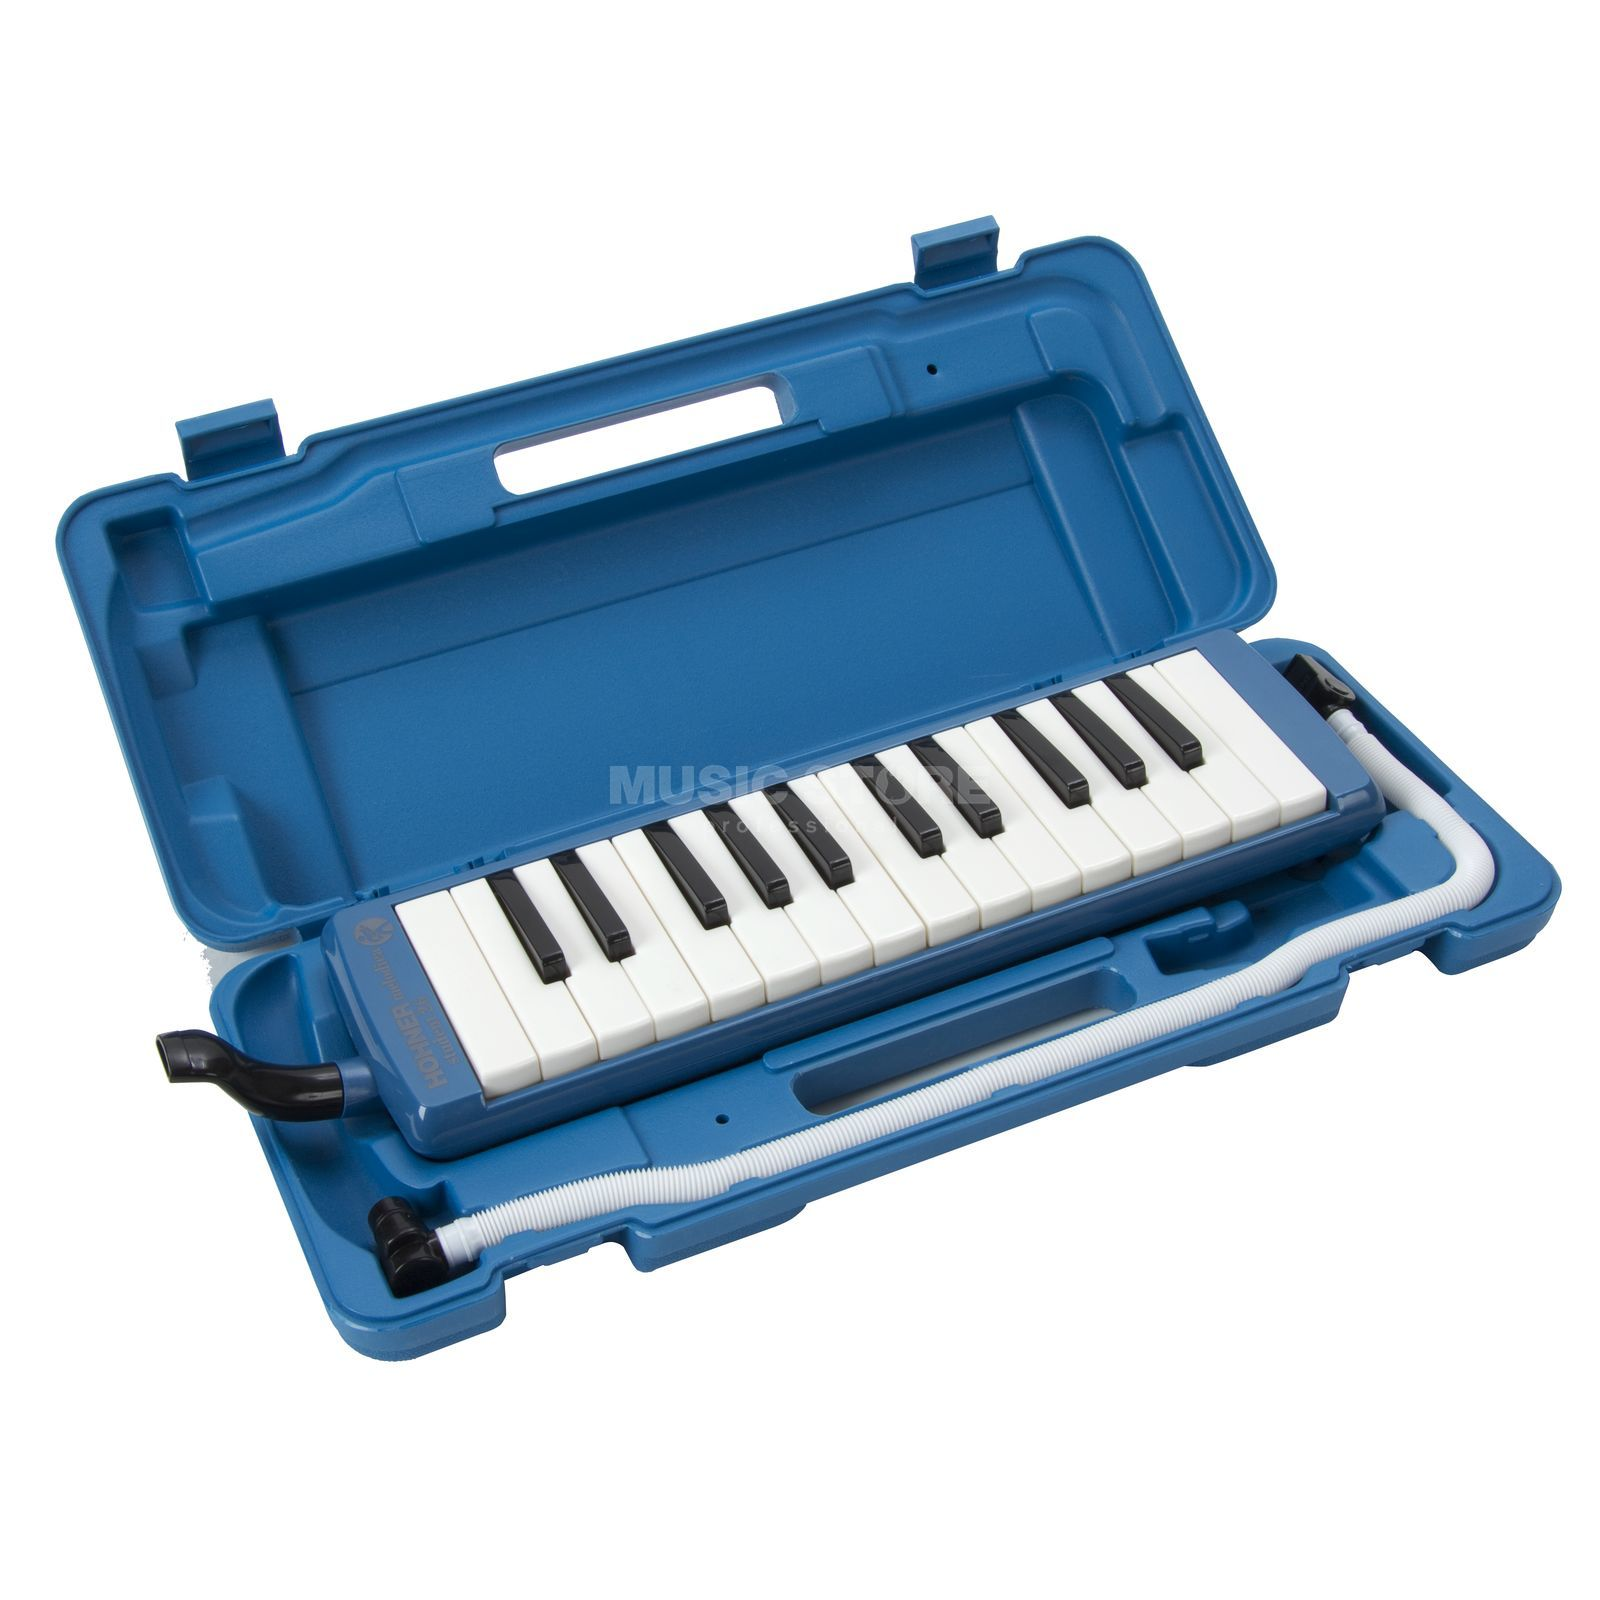 Hohner Student Melodica 26 - Blue incl. Bag and Accessories Produktbillede